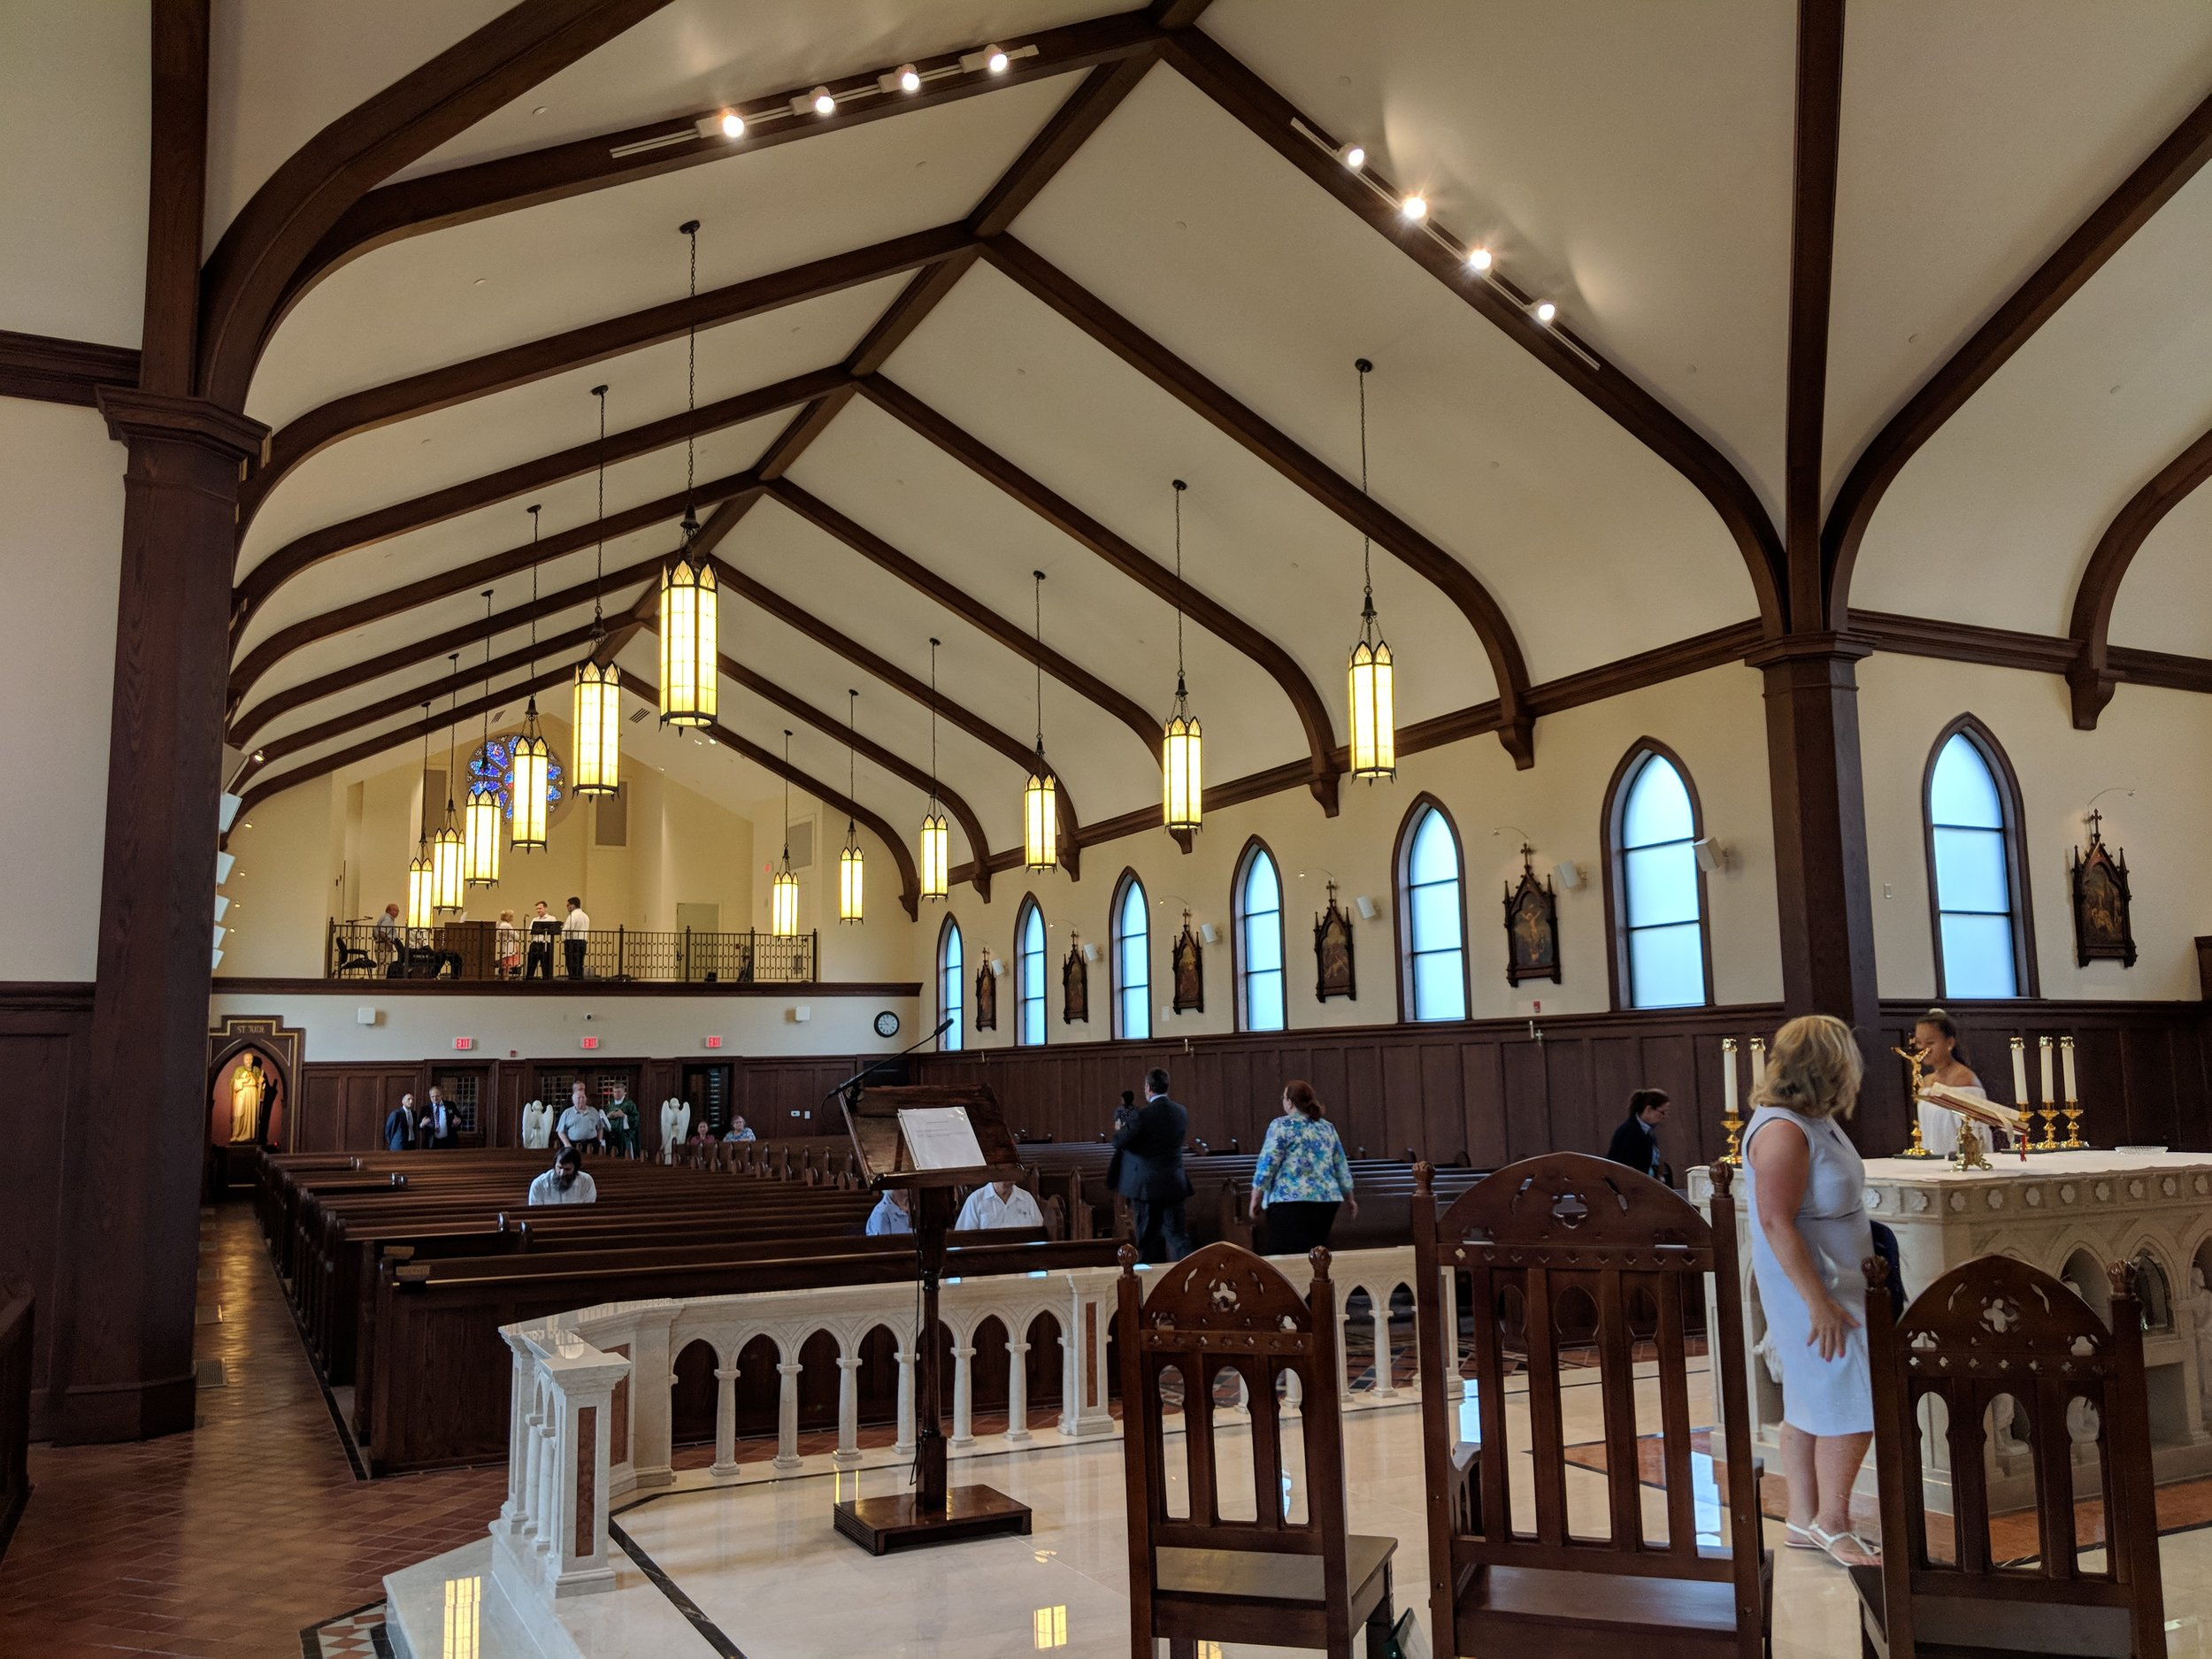 The newly constructed St. Jude Church in Fredericksburg, VA.